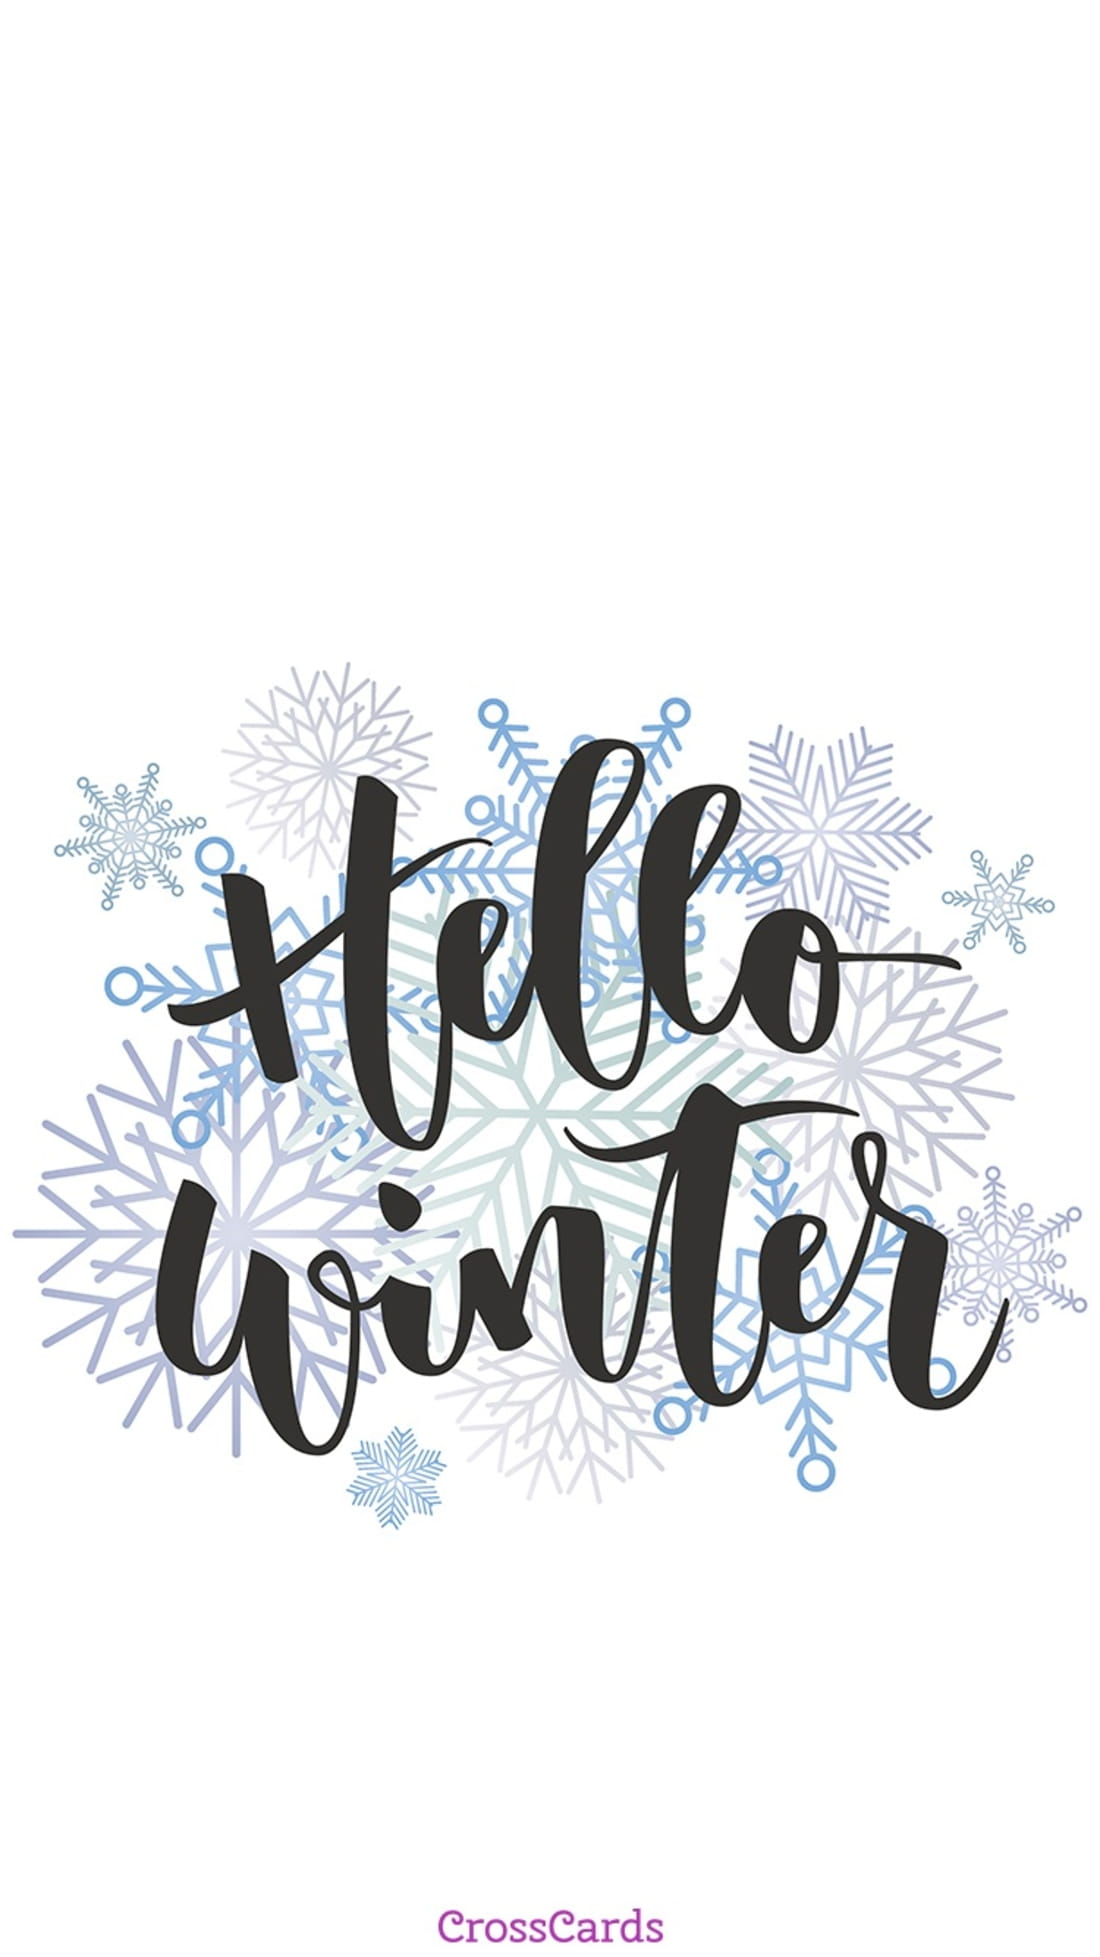 Hello Winter mobile phone wallpaper